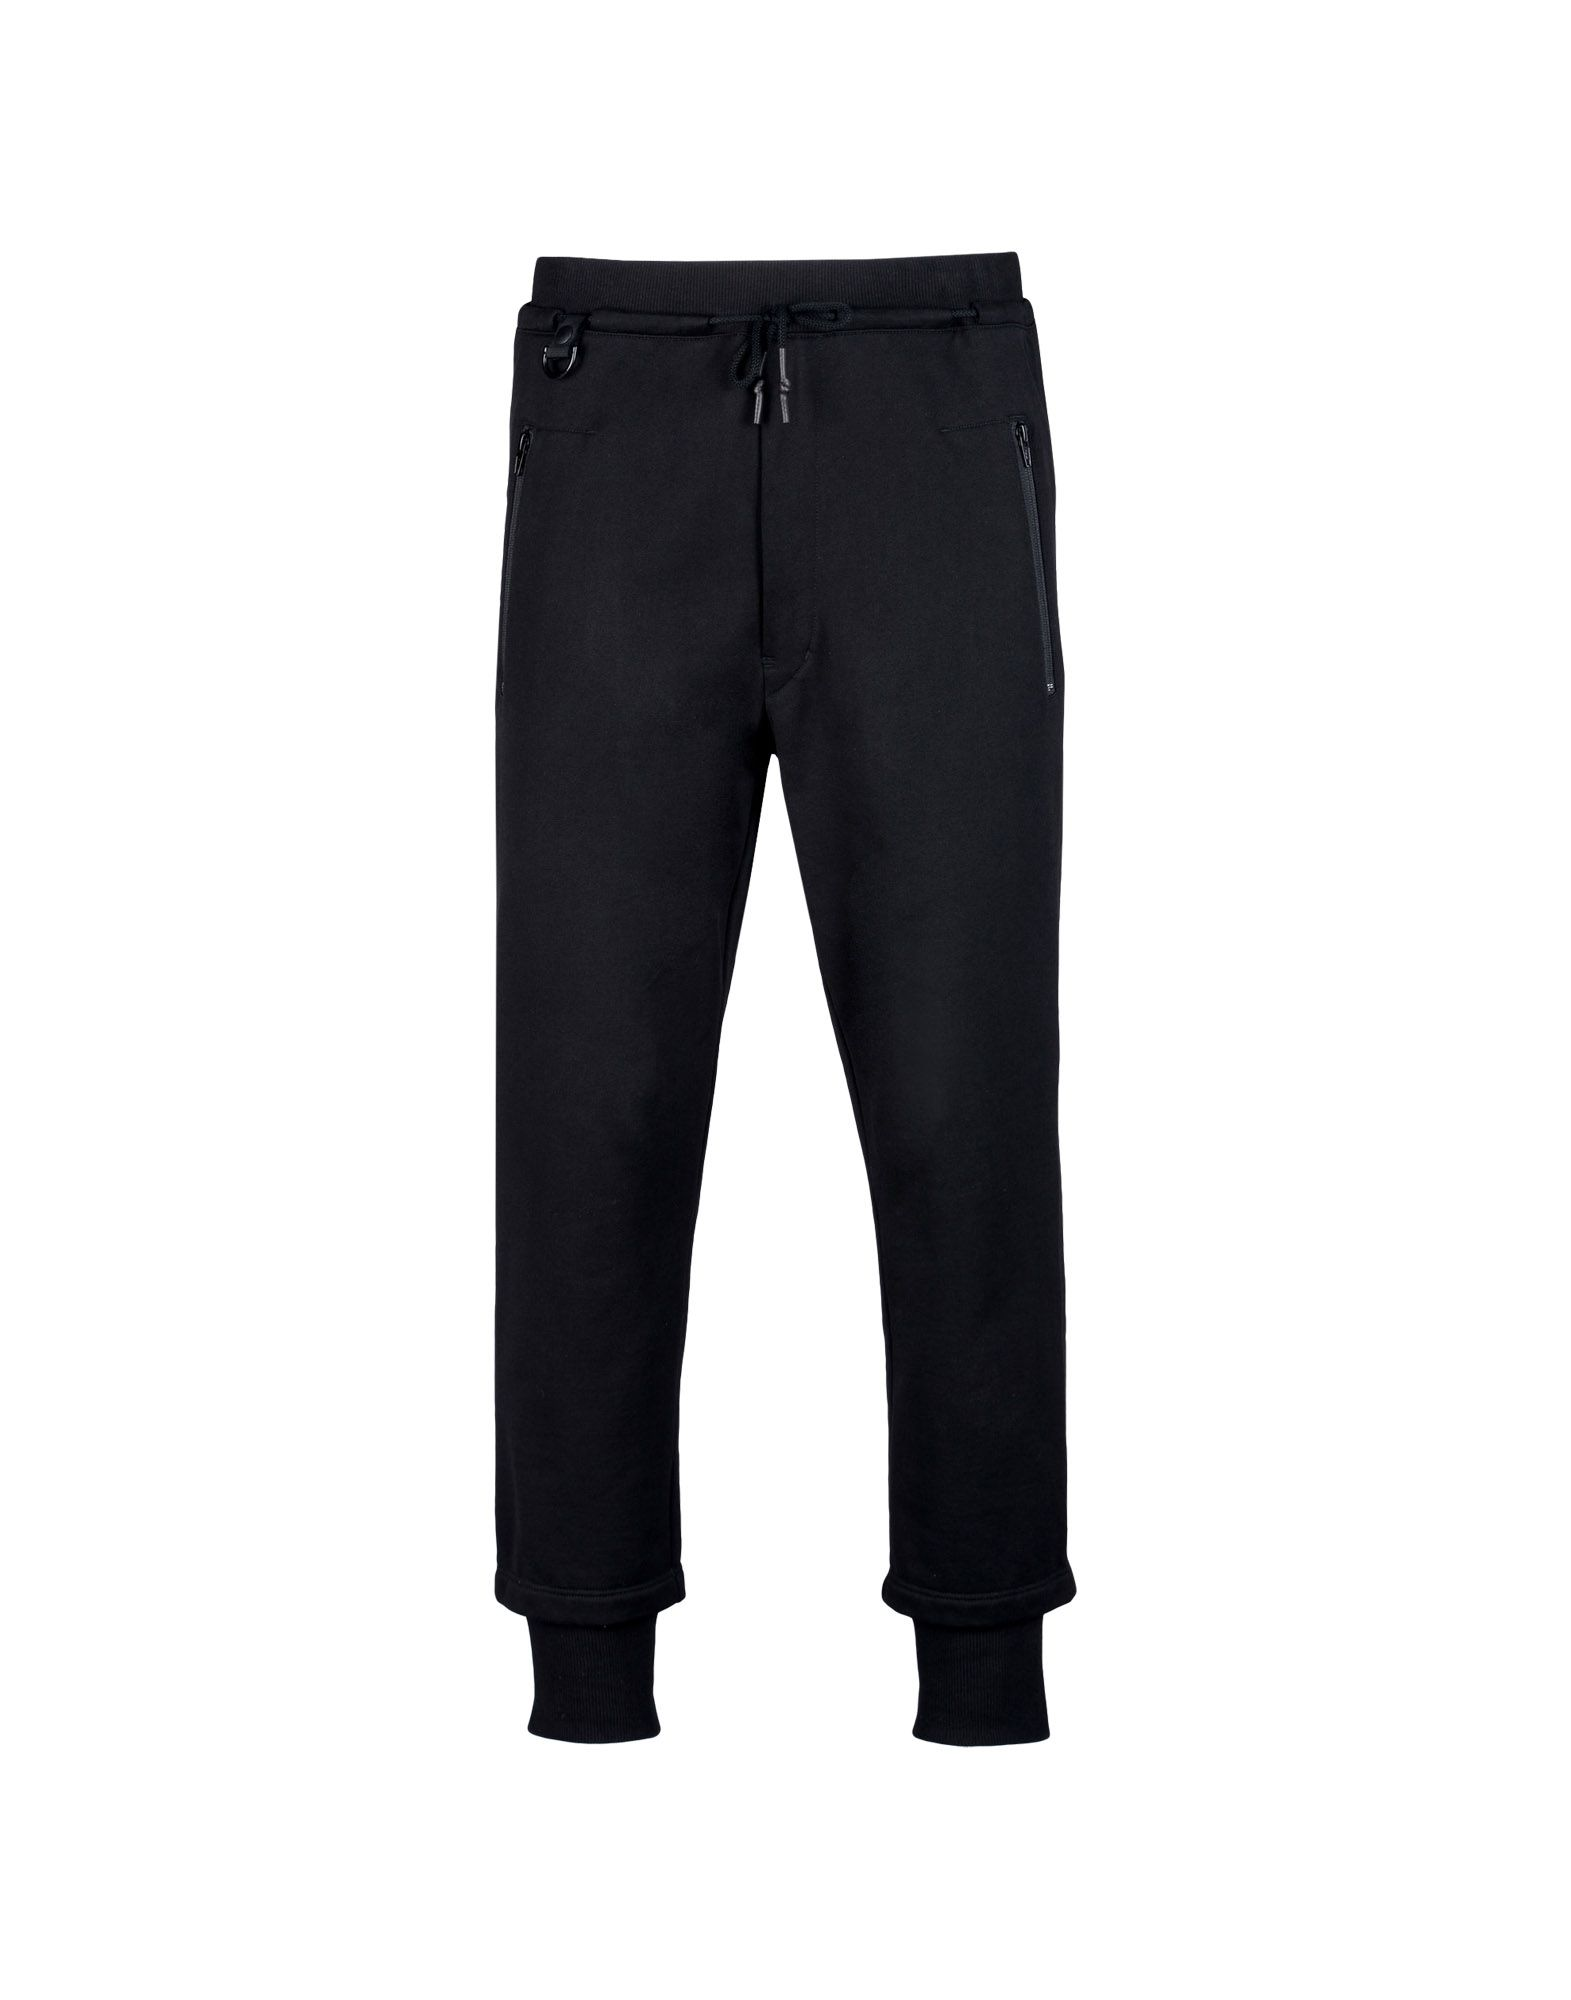 Y 3 BRANDED FT PANT Sweat Pants for Men | Adidas Y-3 Official Store